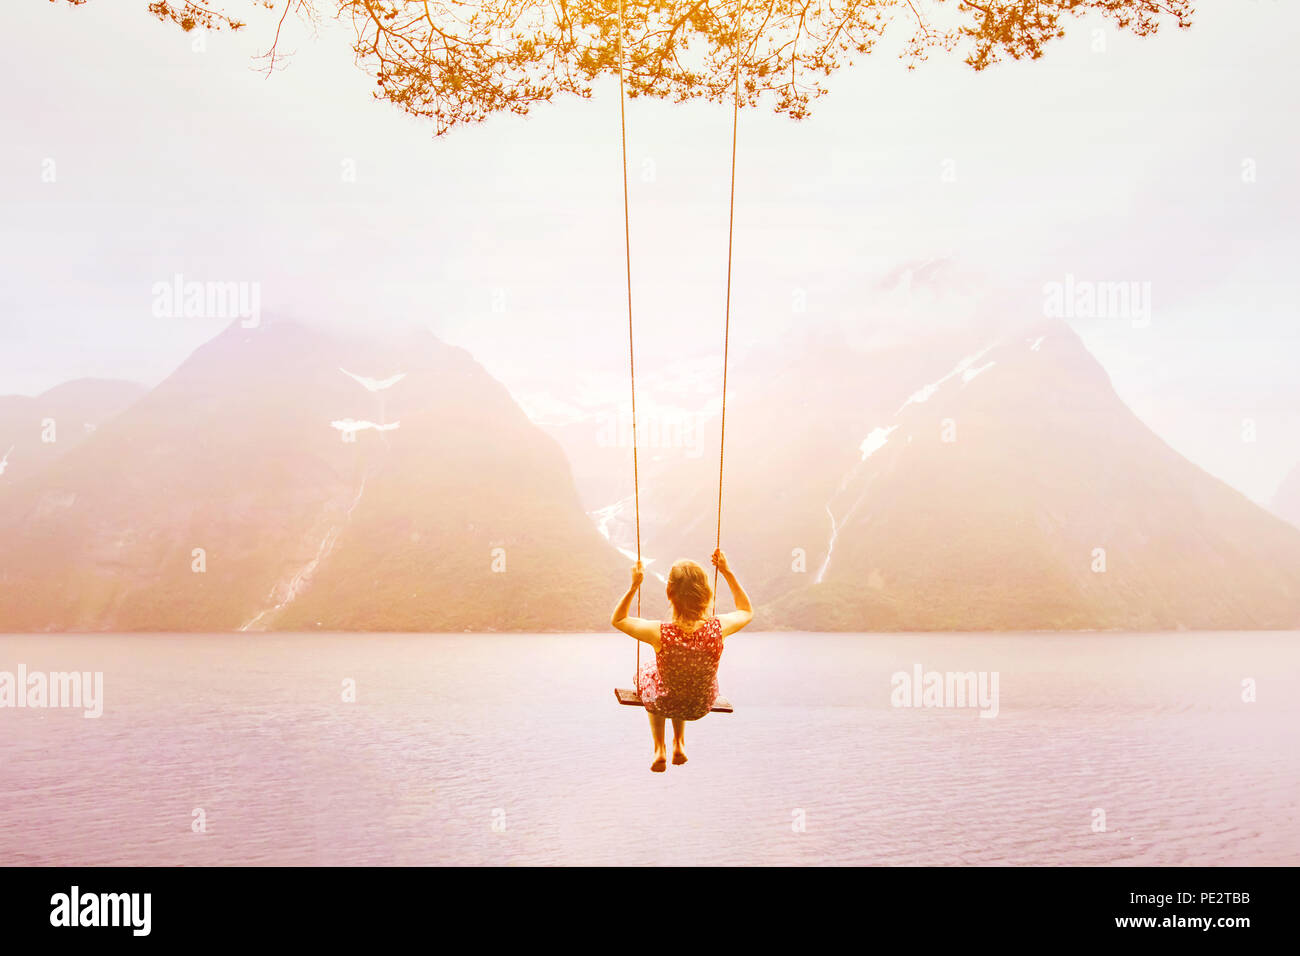 inspiration, travel and daydream concept, beautiful young woman romantic dreamer on the swing in amazing summer inspirational landscape background - Stock Image